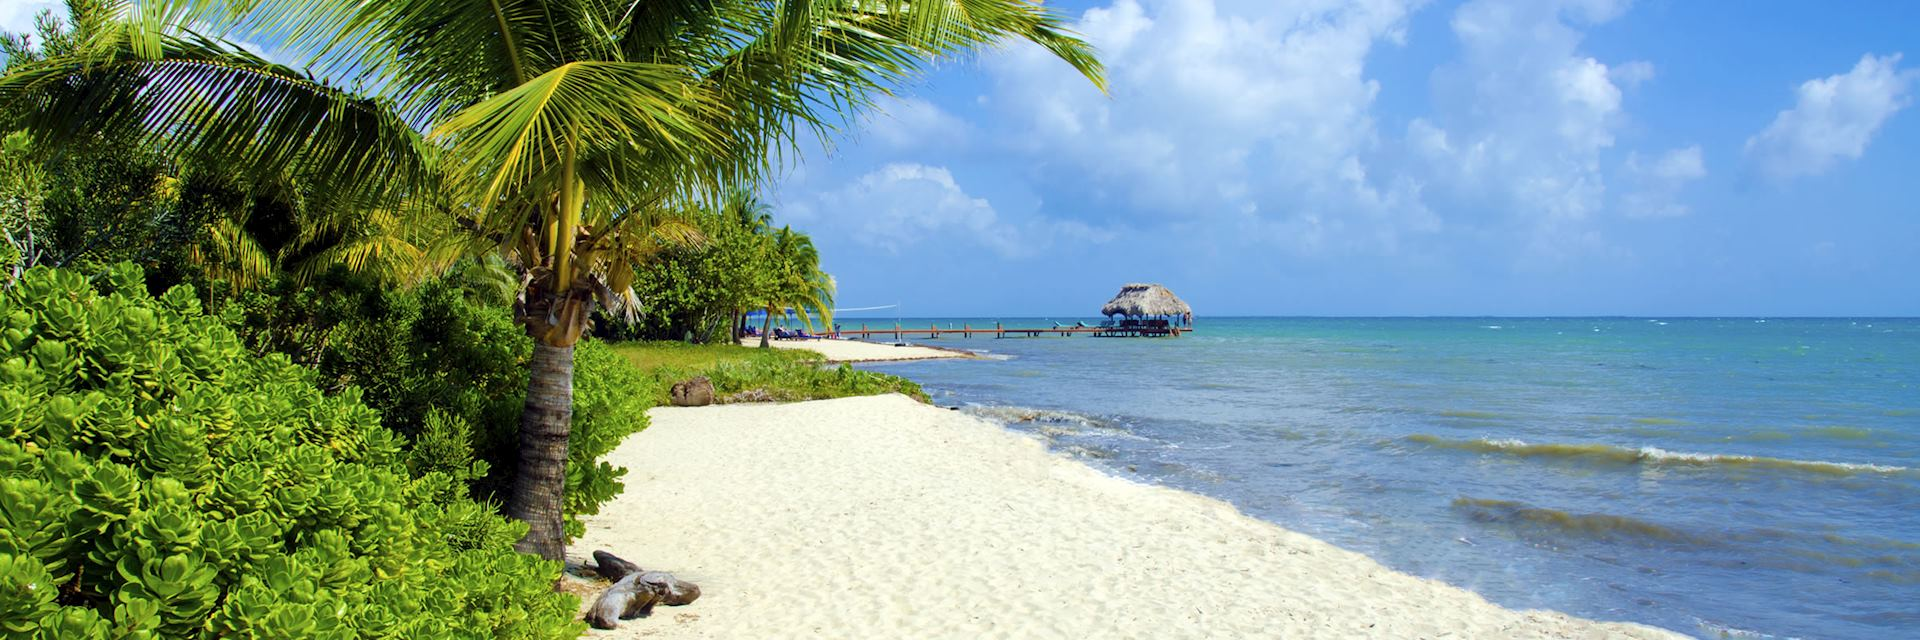 Beach in Placencia, Belize